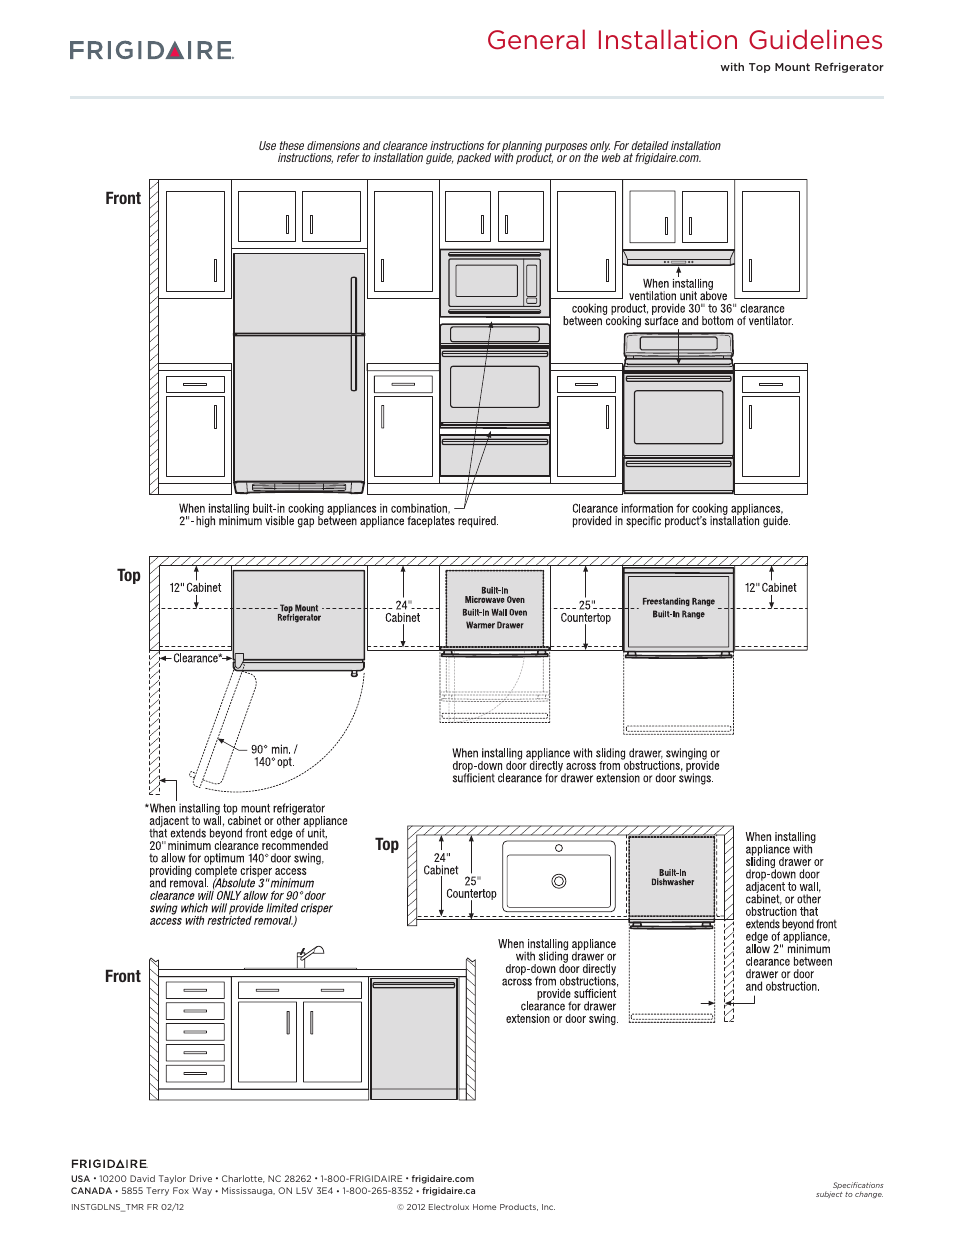 General installation guidelines, Front top front top